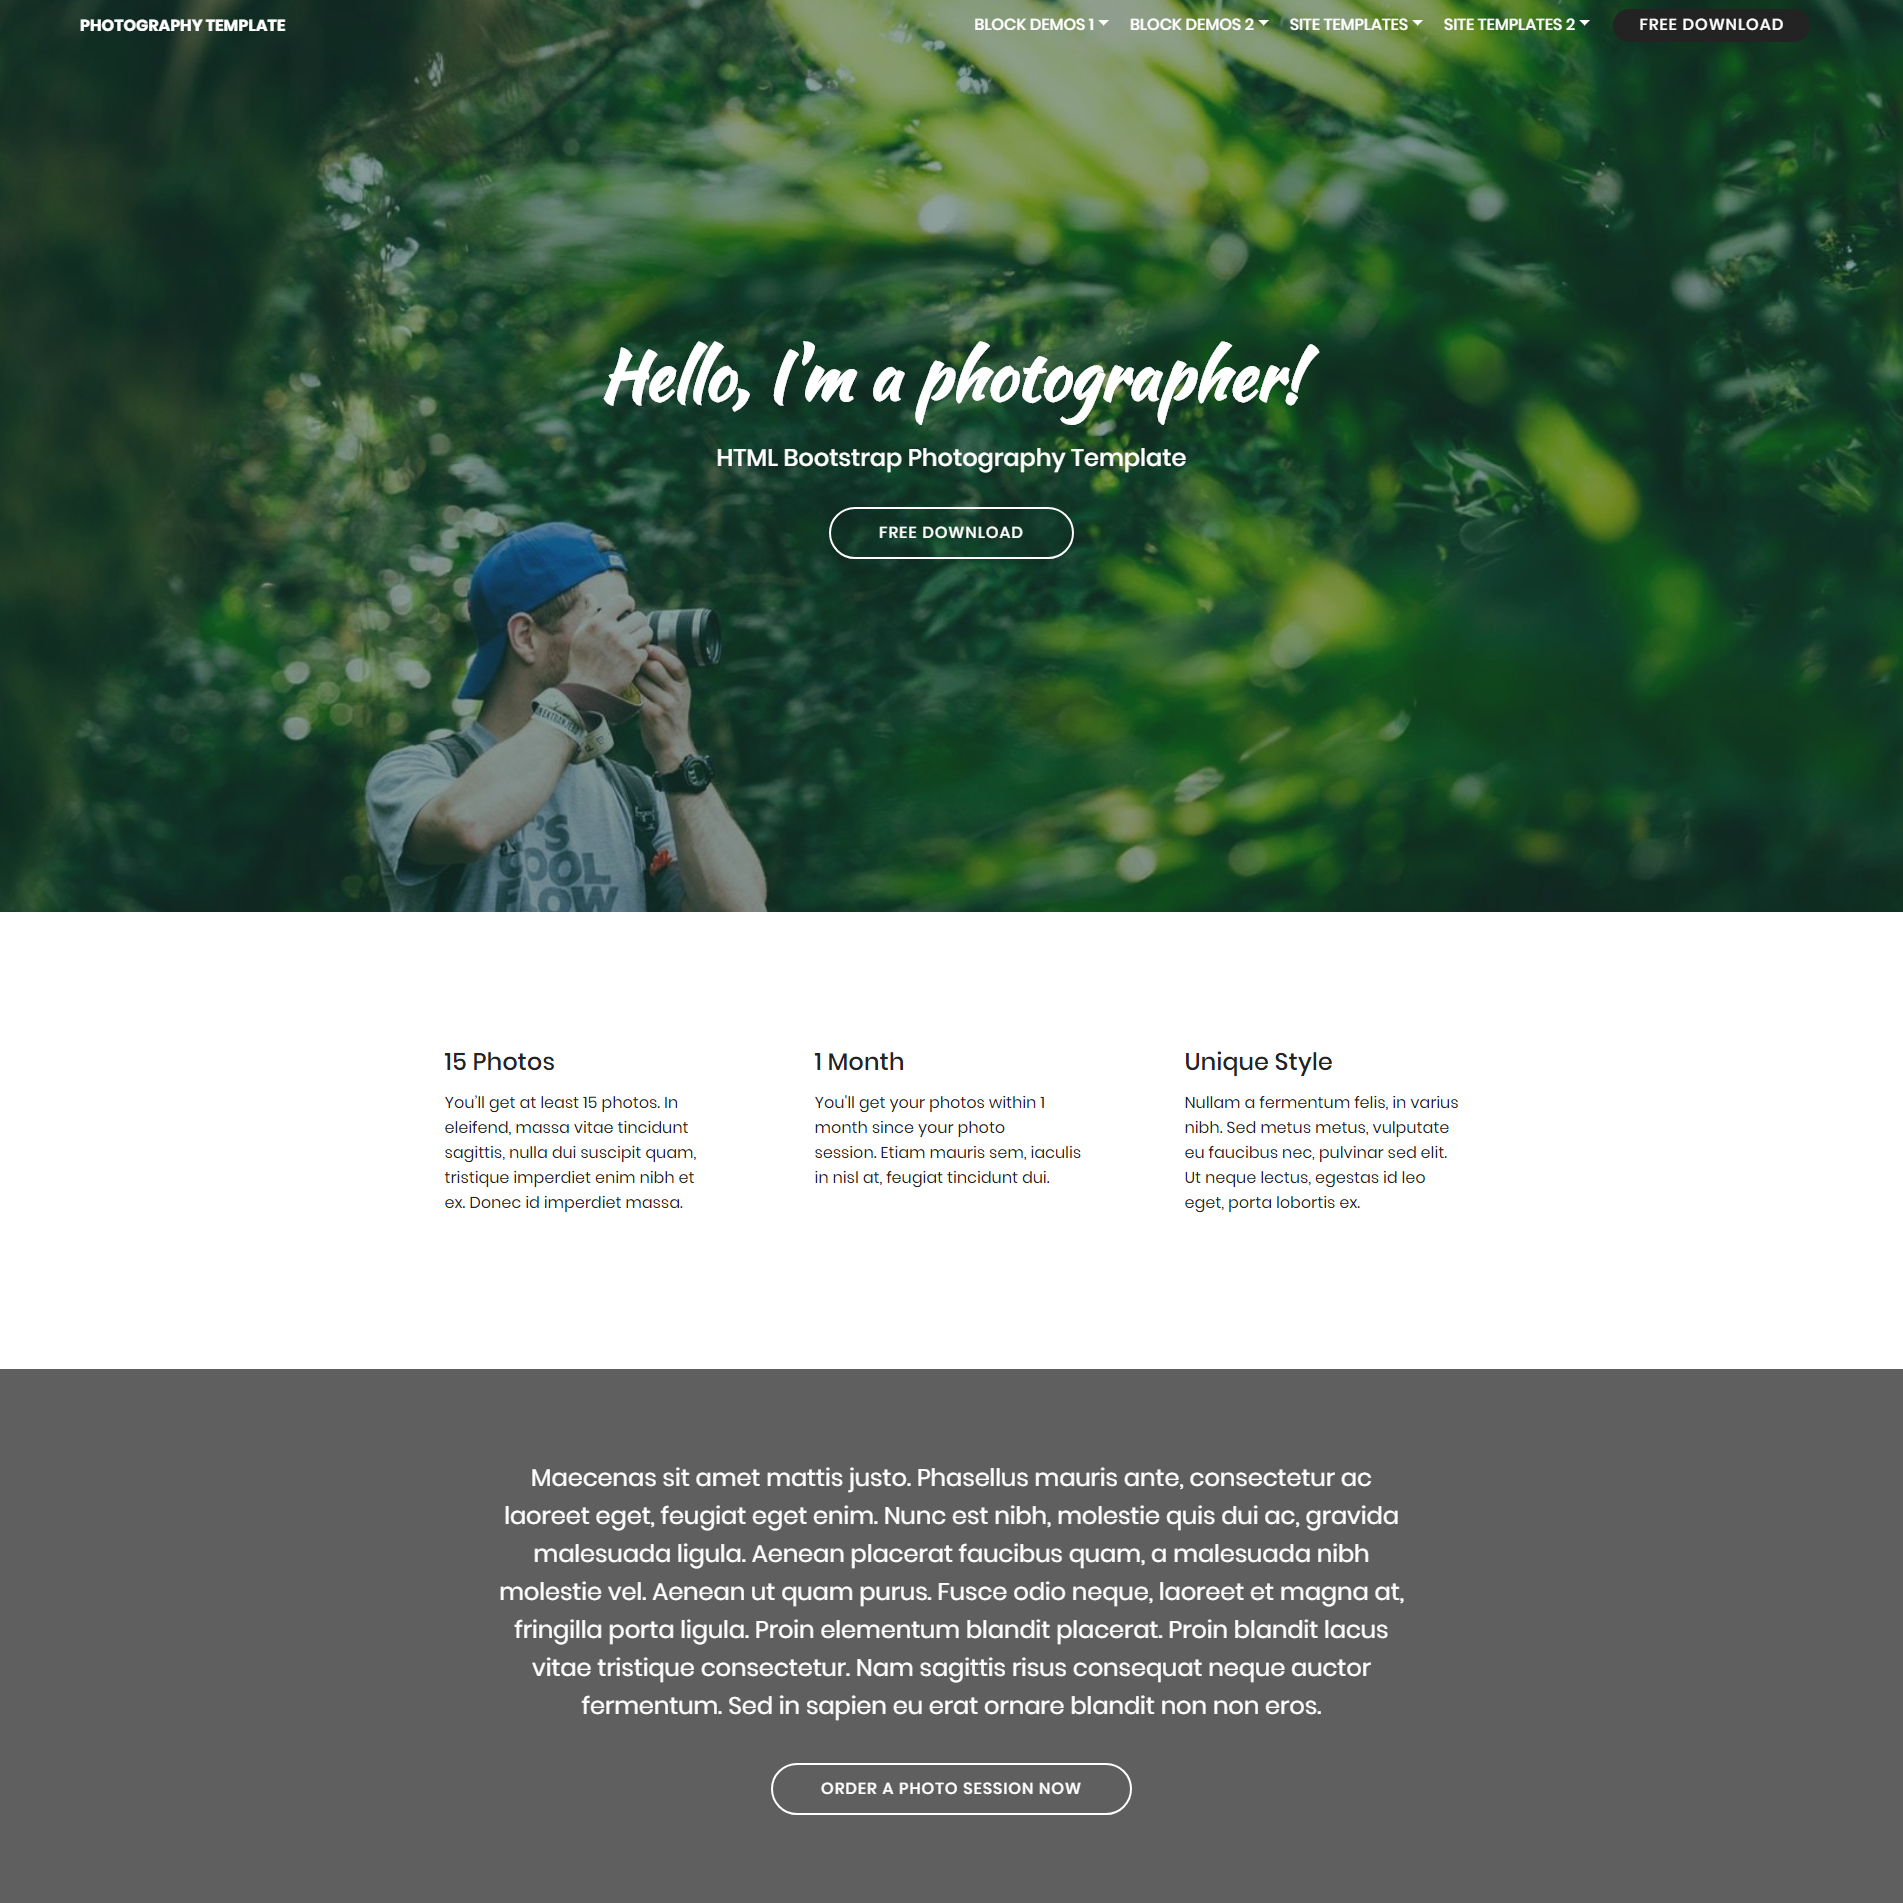 HTML5 Bootstrap Photography Templates